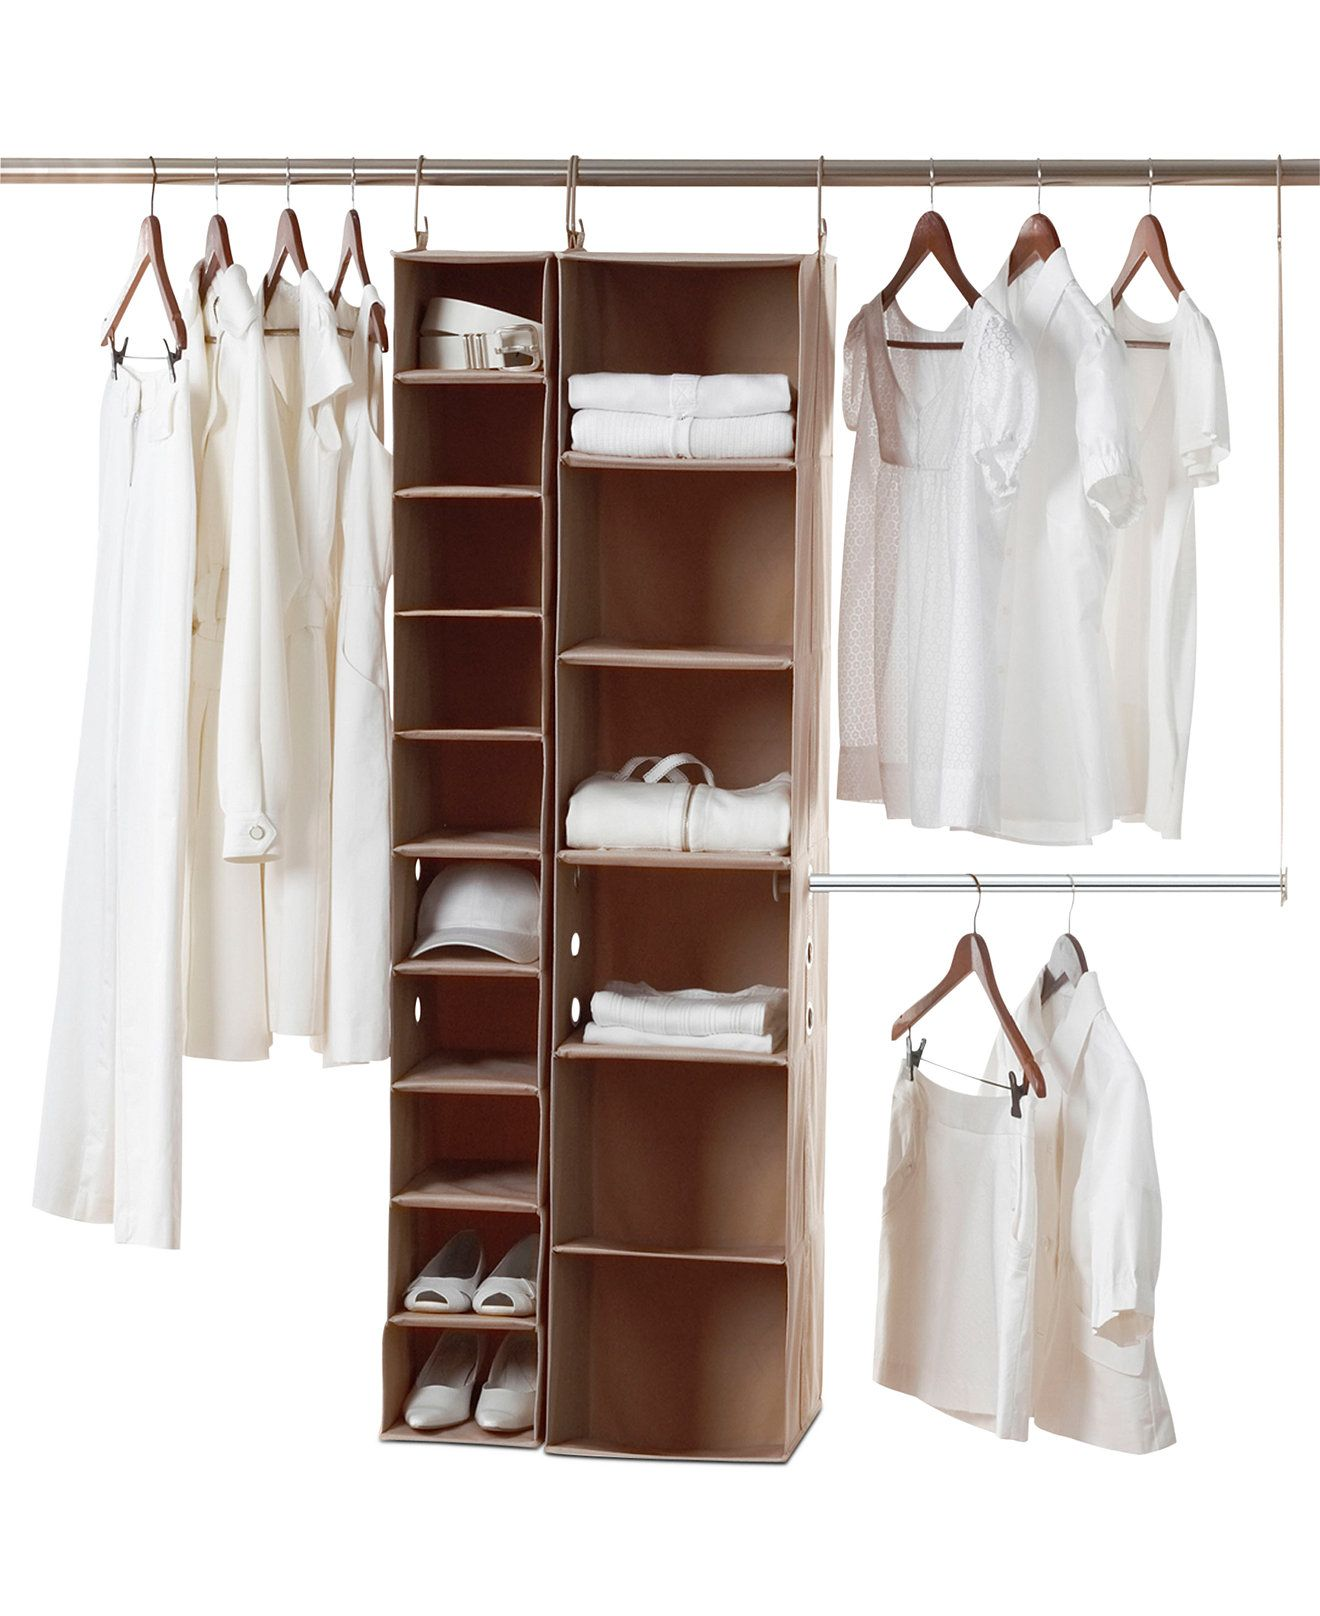 system small bedroo diycloset shelving cheap smothery closet design depot ideas clos organization at bedroom intriguing comfortable custom systems organizer storage diy ikeasmall home soothing reviews easy